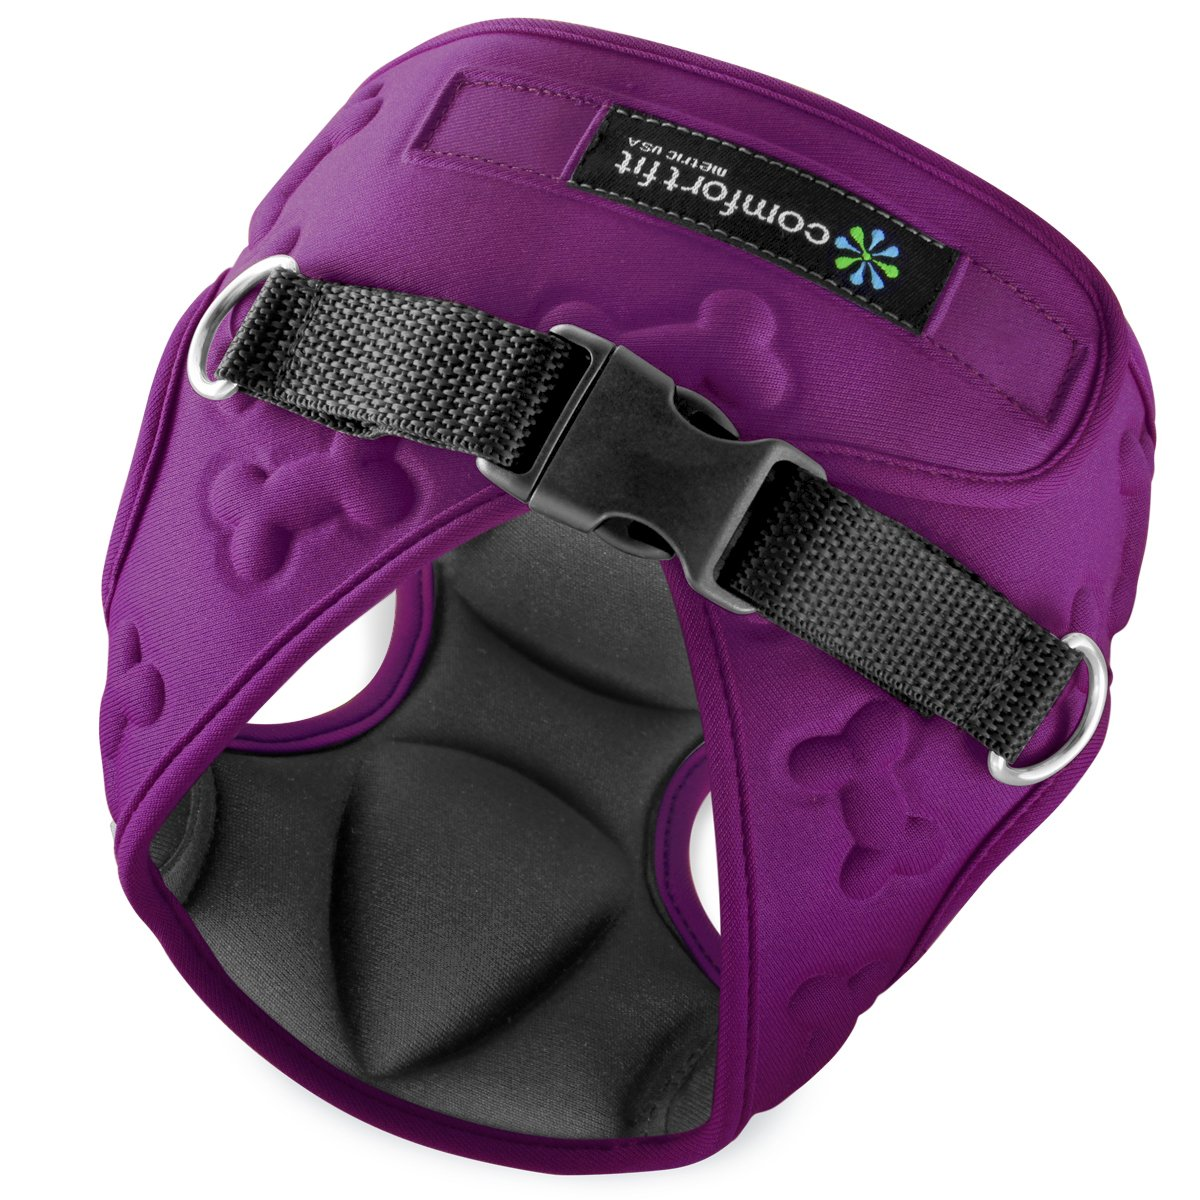 Easy to Put on and Take Off Small Dog Harnesses Our Small Dog Harness Vest has Padded Interior and Exterior Cushioning Ensuring Your Dog is Snug and Comfortable   (Small, Purple)